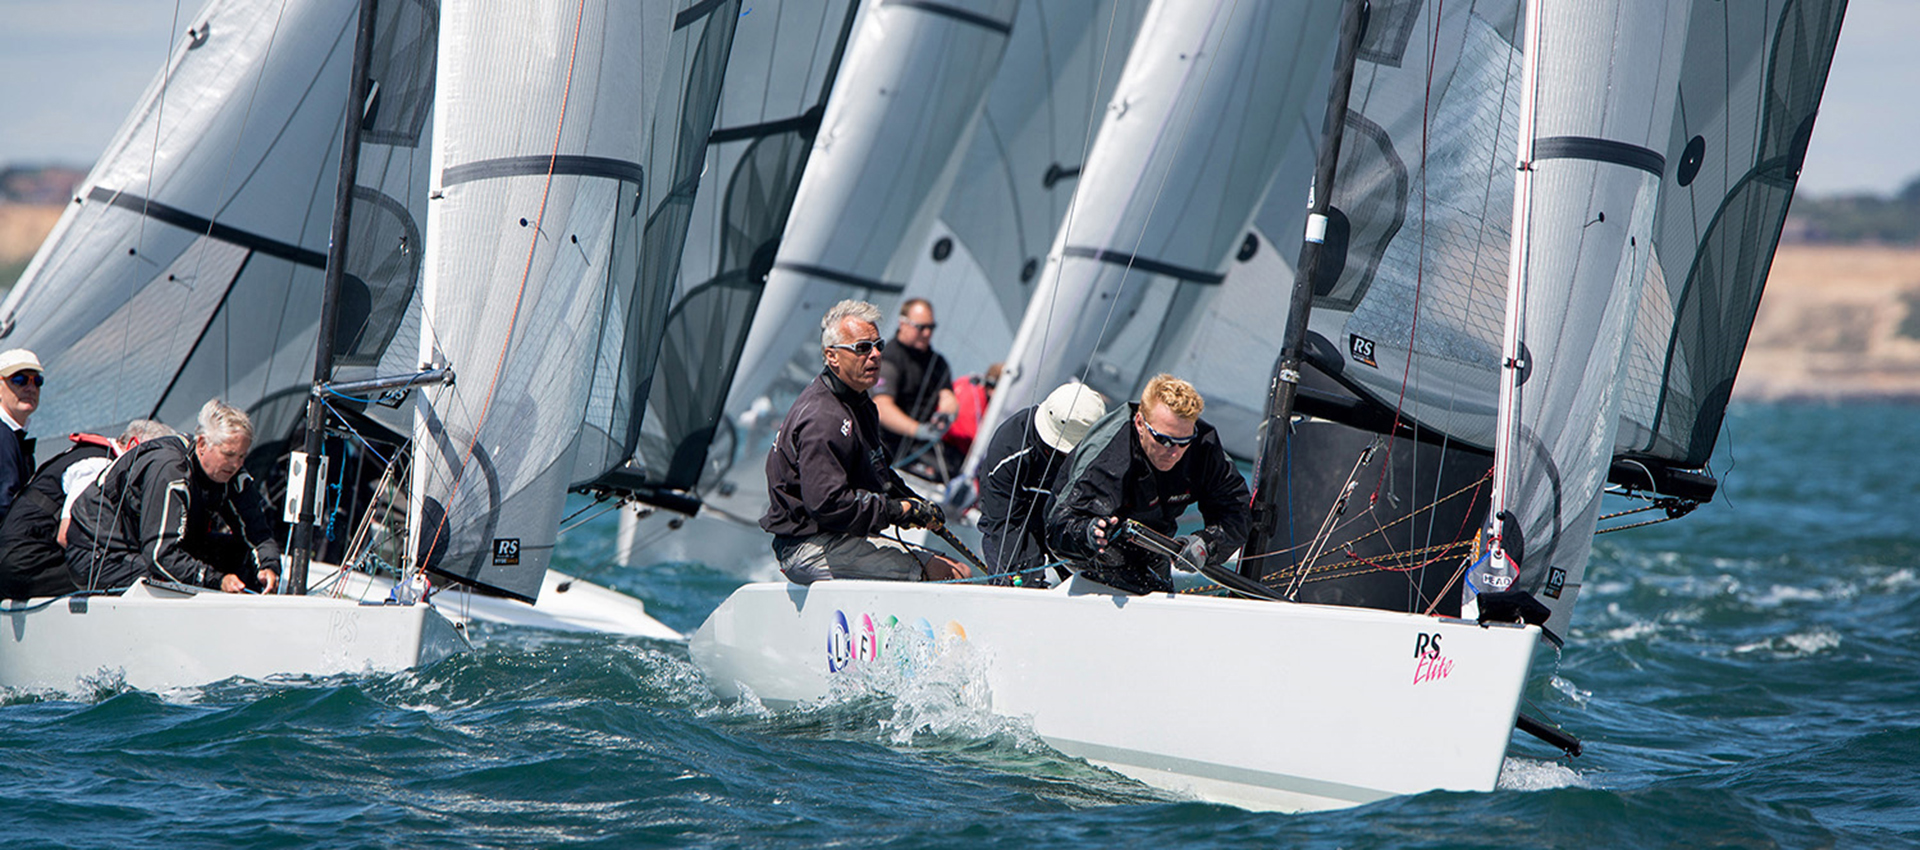 RS Elite sailing upwind